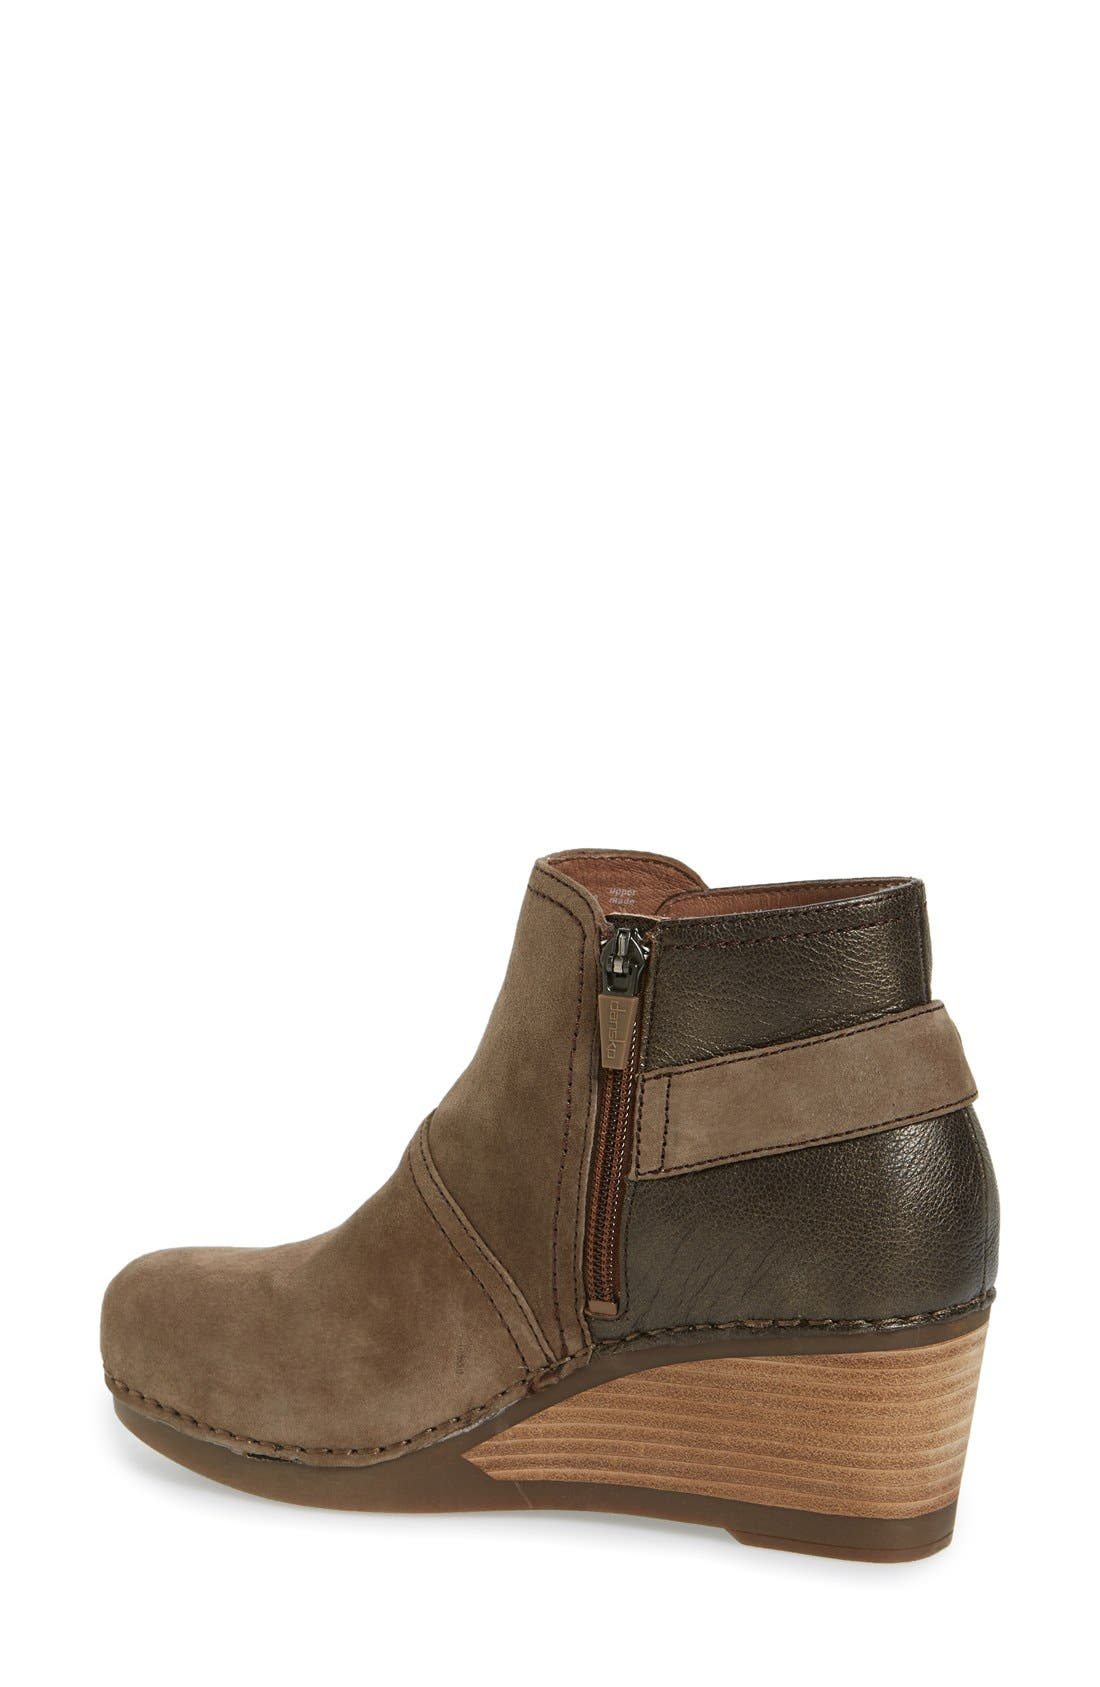 'Shirley' Wedge Bootie,                             Alternate thumbnail 9, color,